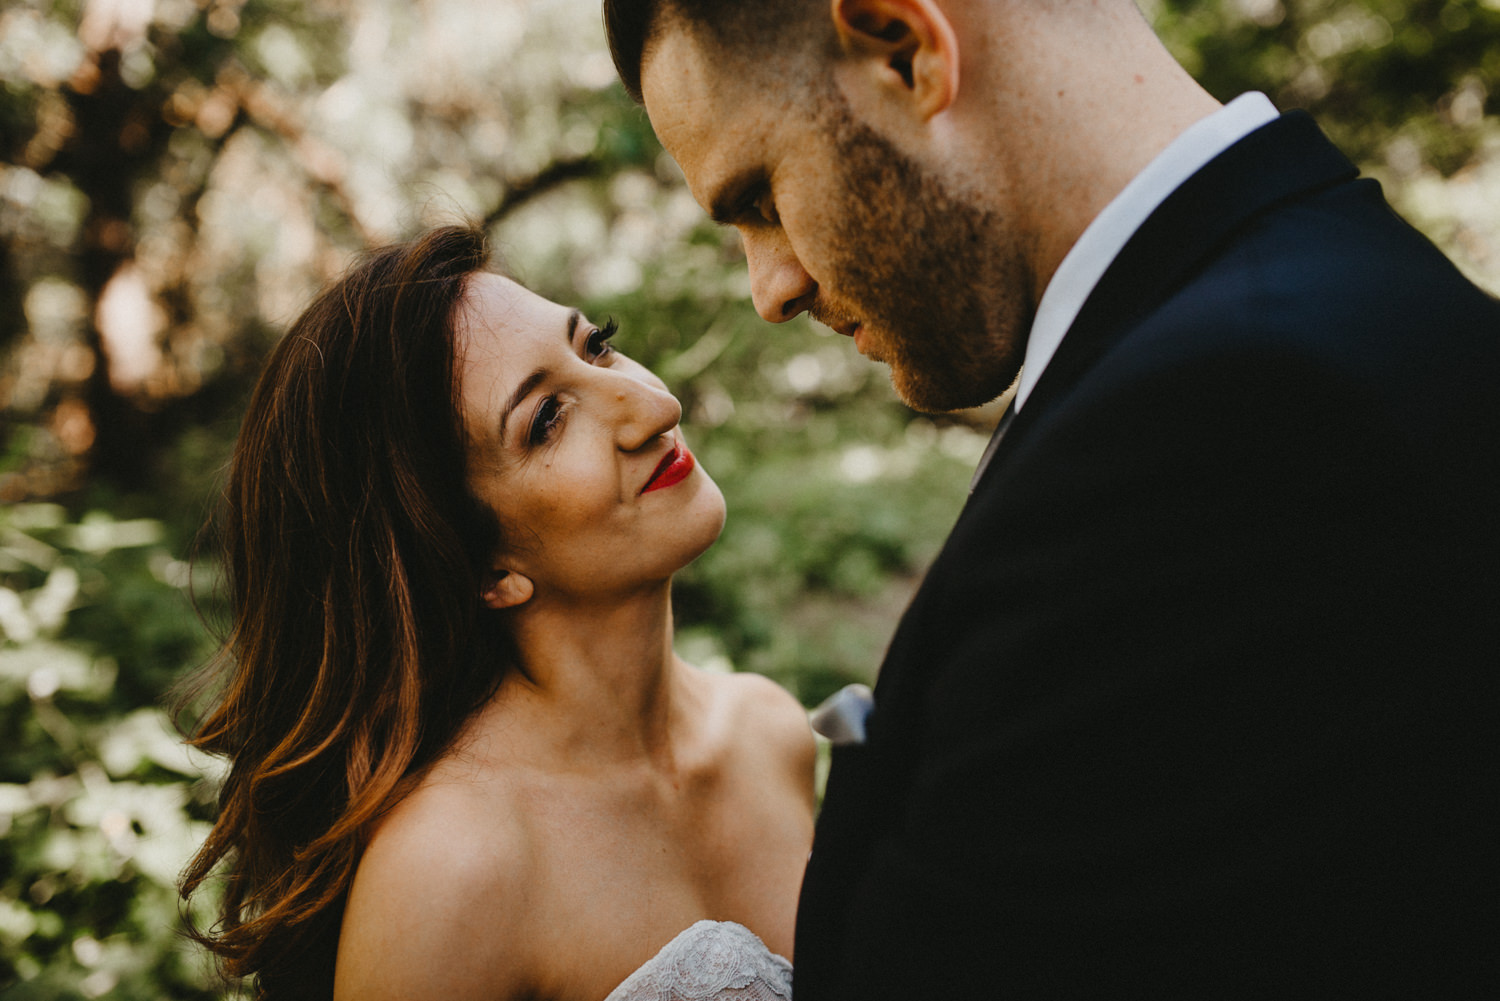 wife smiles at her husband